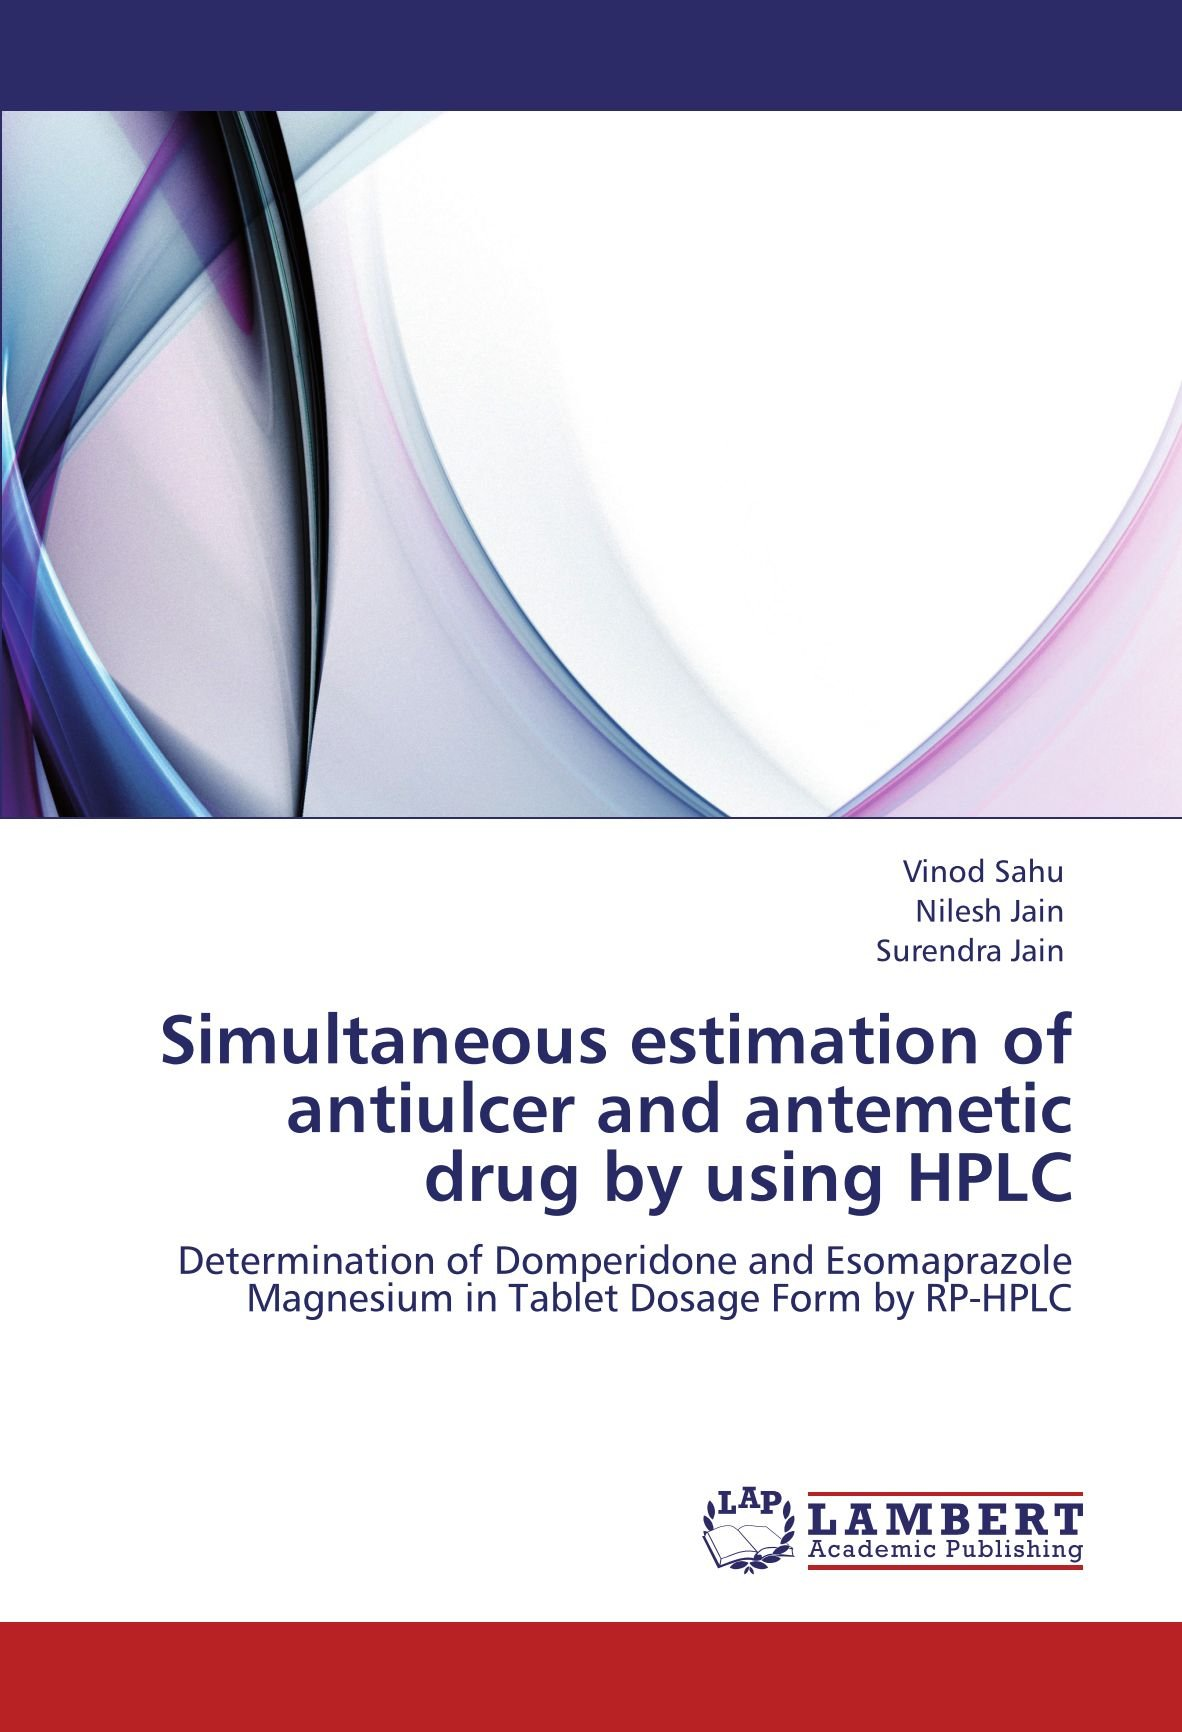 Simultaneous estimation of antiulcer and antemetic drug by using HPLC: Determination of Domperidone and Esomaprazole Magnesium in Tablet Dosage Form by ...